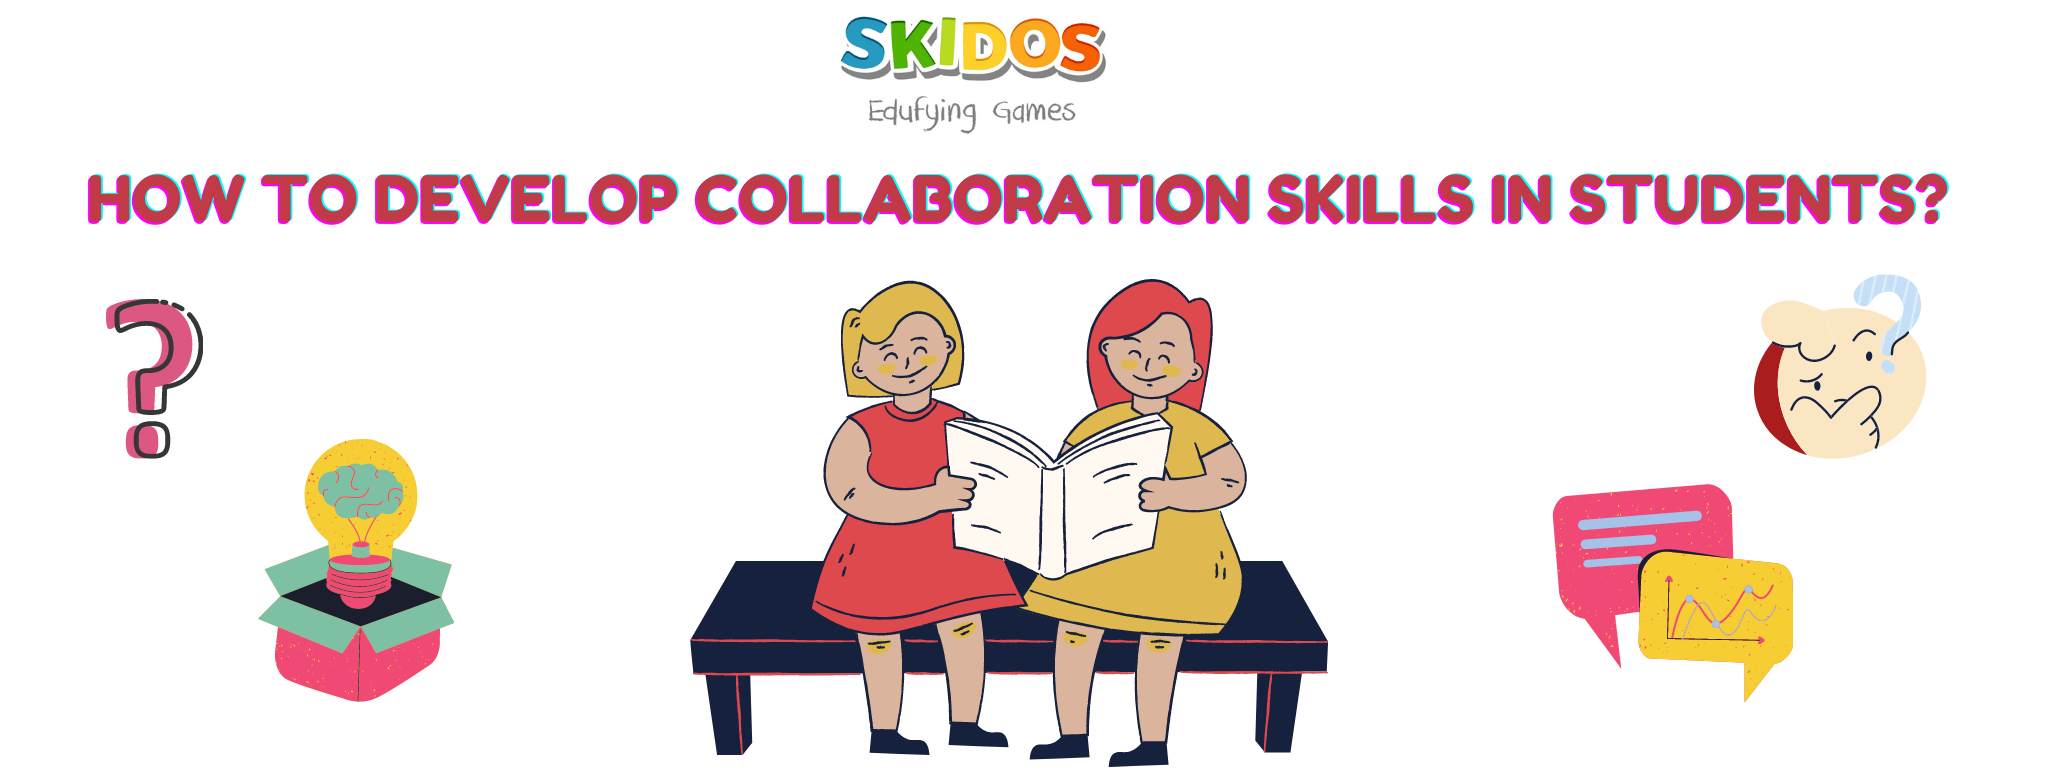 How to develop Collaboration skills in students